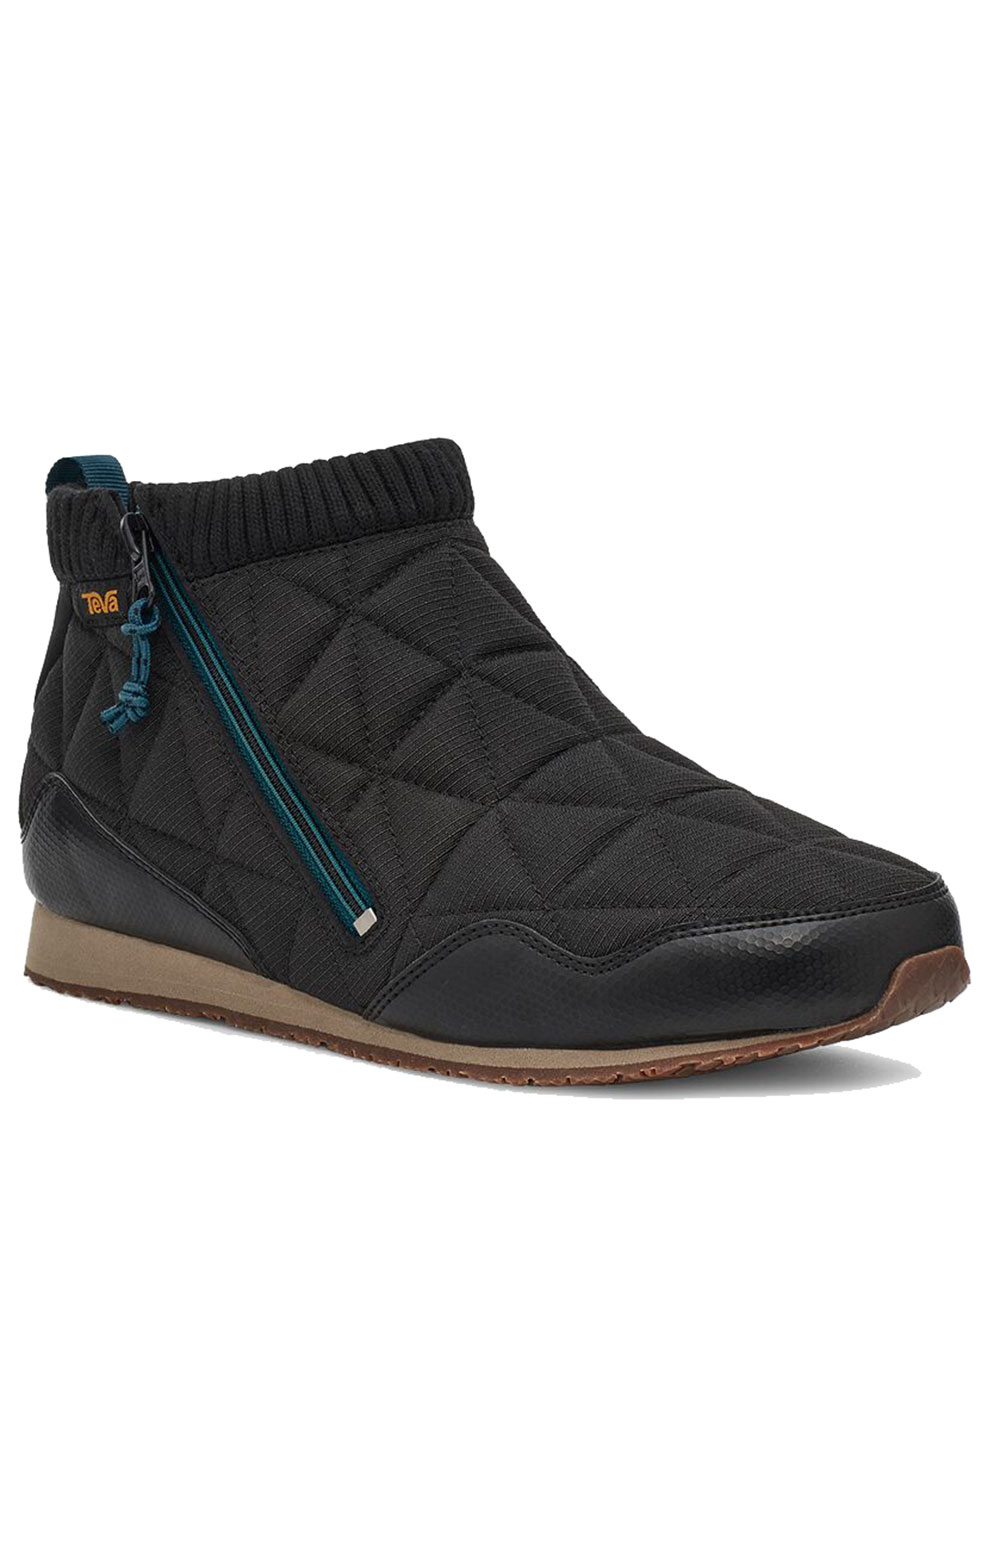 (1125310) ReEMBER MID Shoes - Black  2